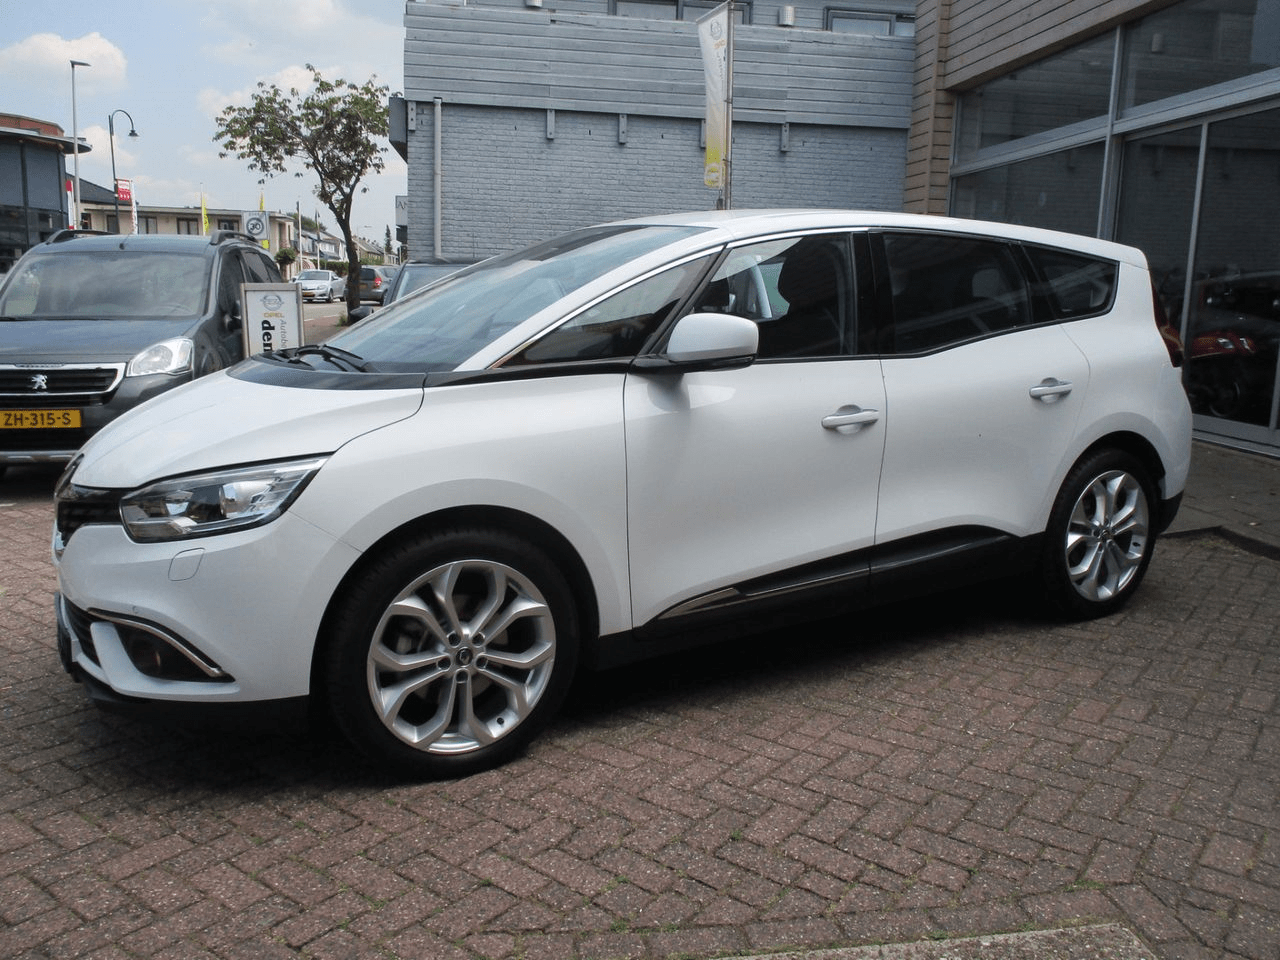 Renault Grand Scénic 1.3 TCe 140pk EDC Intens 7 persoons 5d.